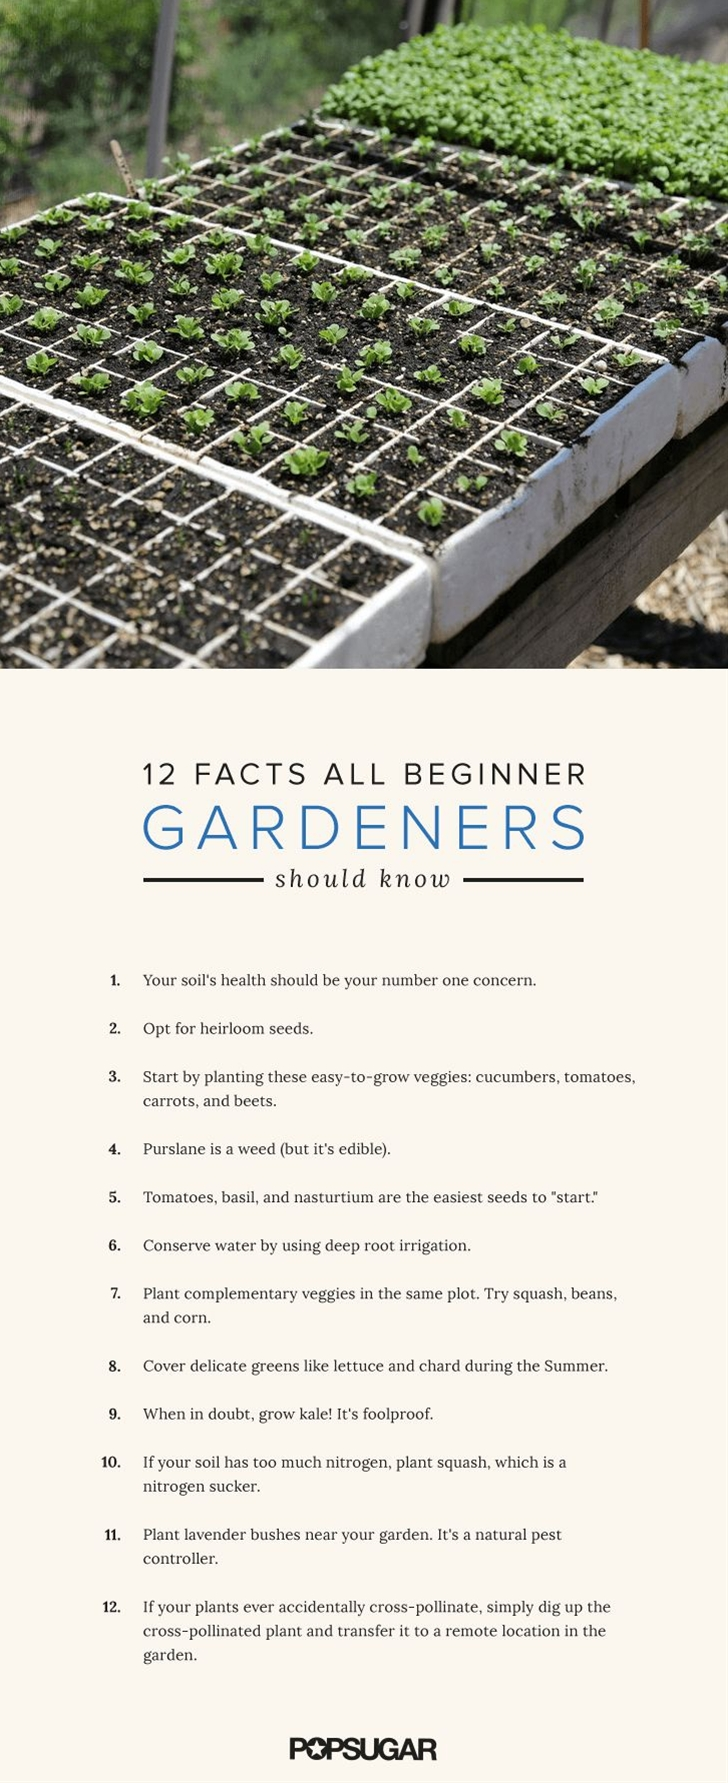 With these 12 tips and tricks, you'll be growing the greenery atop your sandwich and salads in no time.